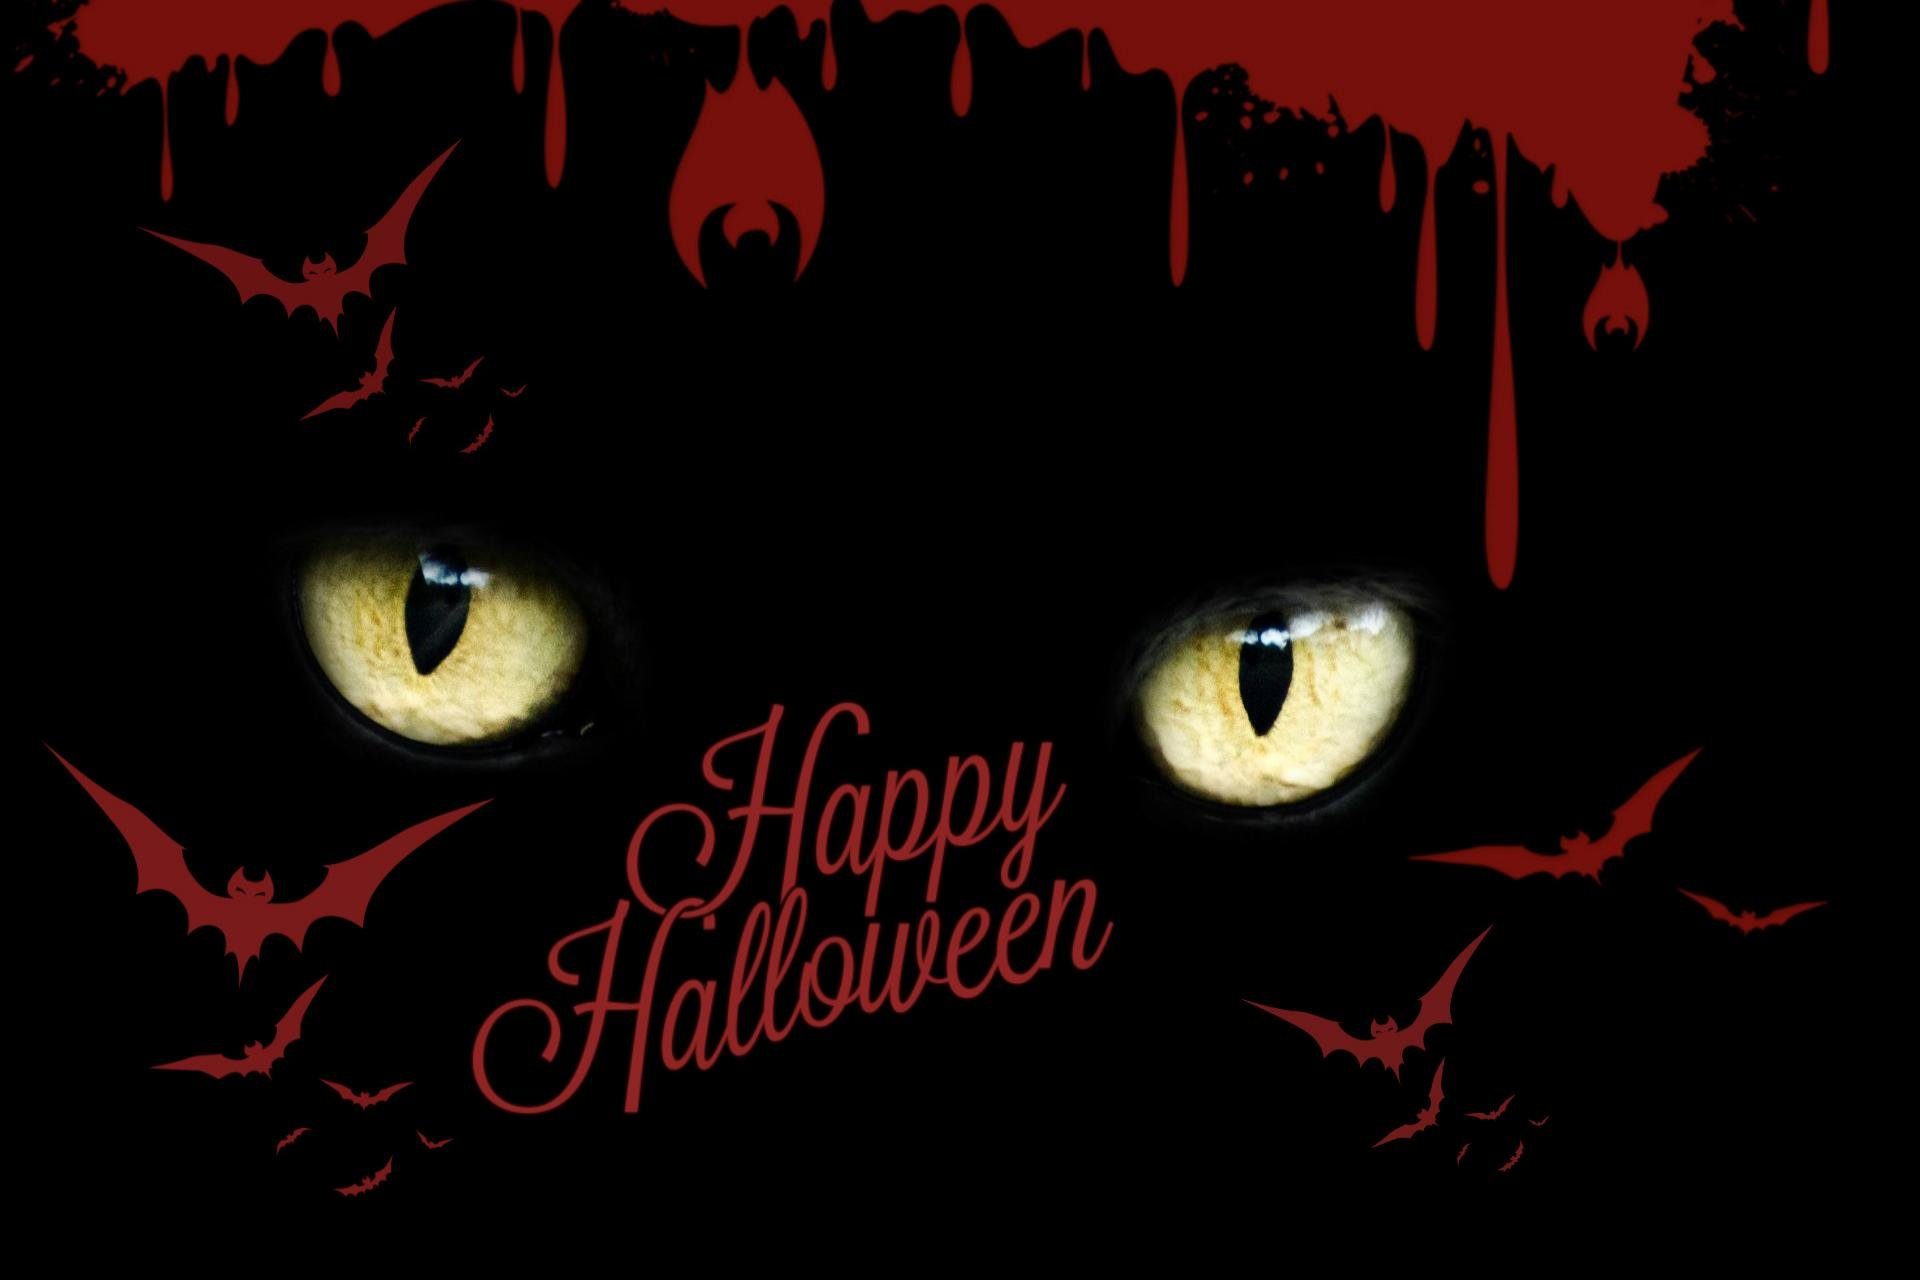 download Happy Halloween wallpaper ID402242 hd 1920x1280 for 1920x1280